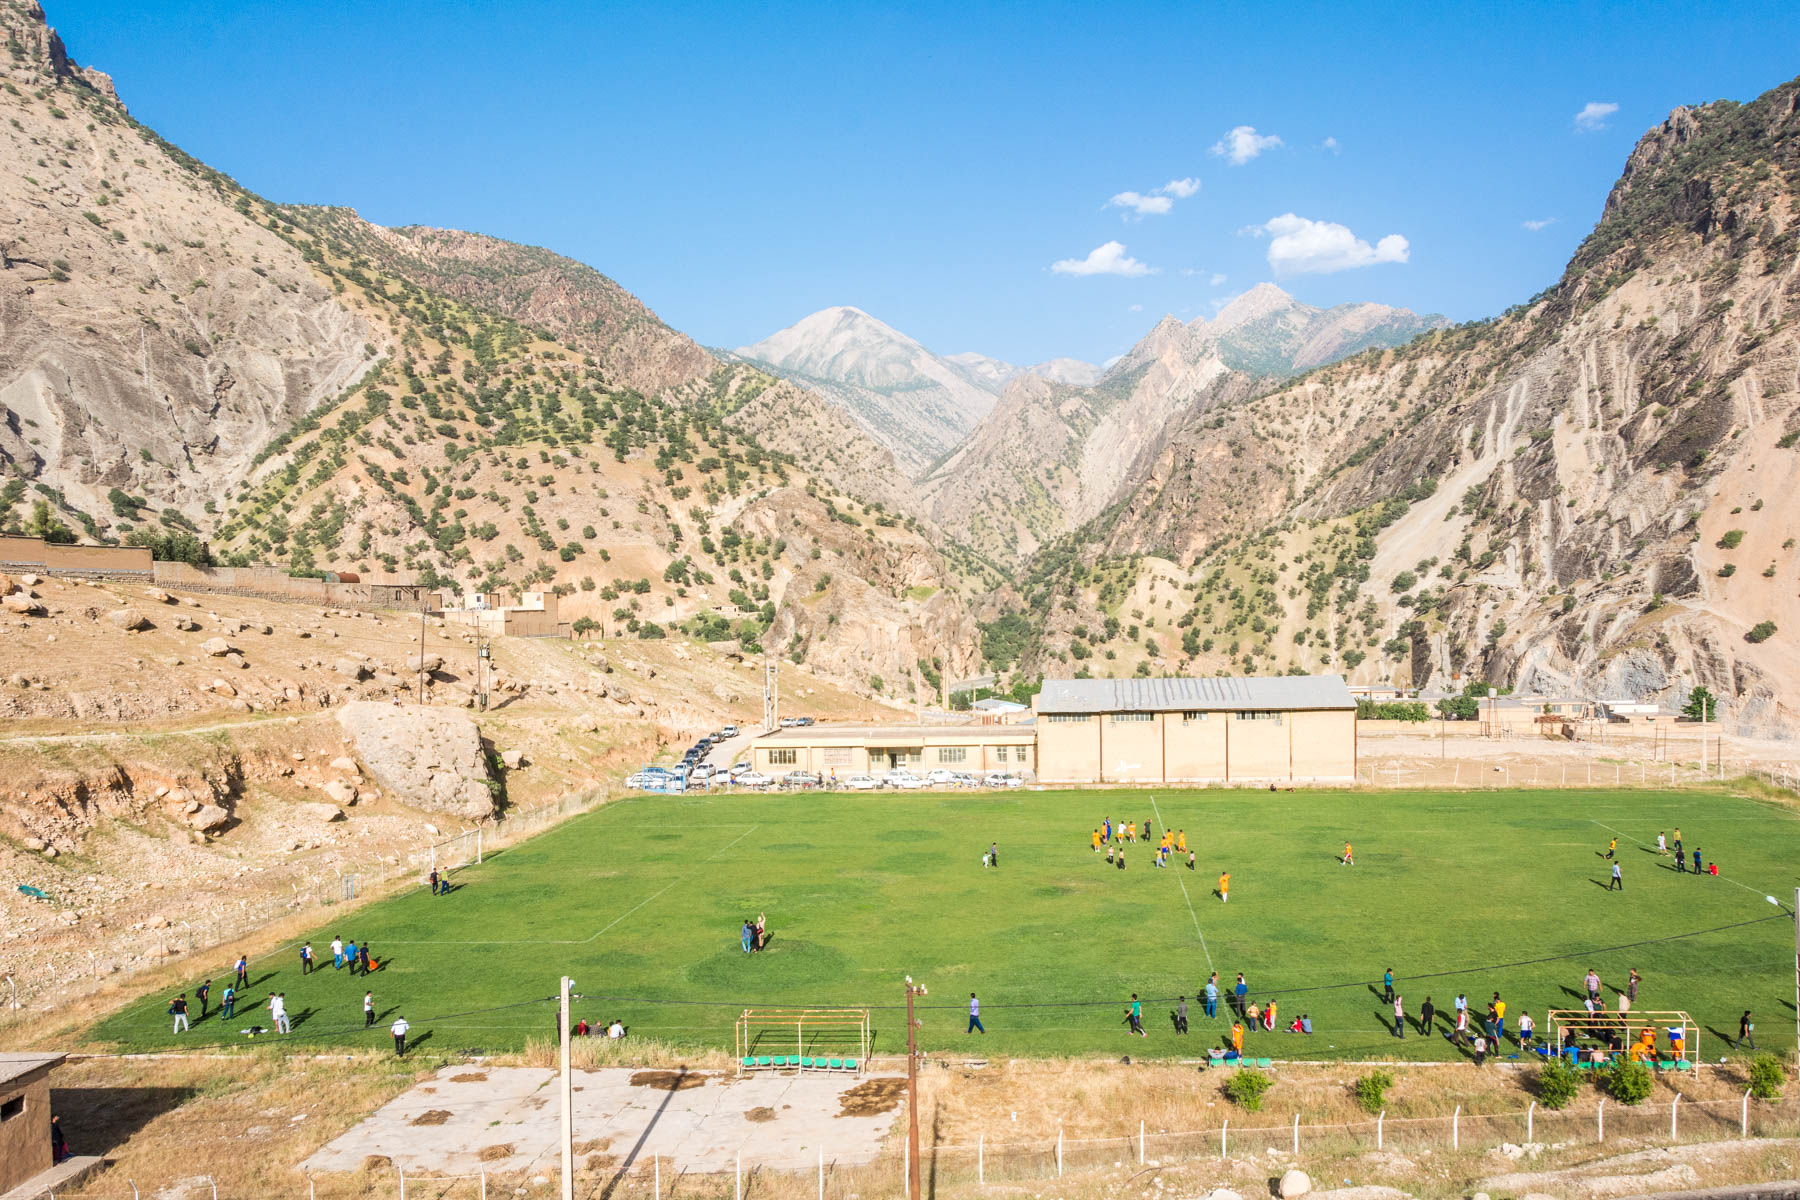 Football pitch Dorud Ansimeshk, Iran